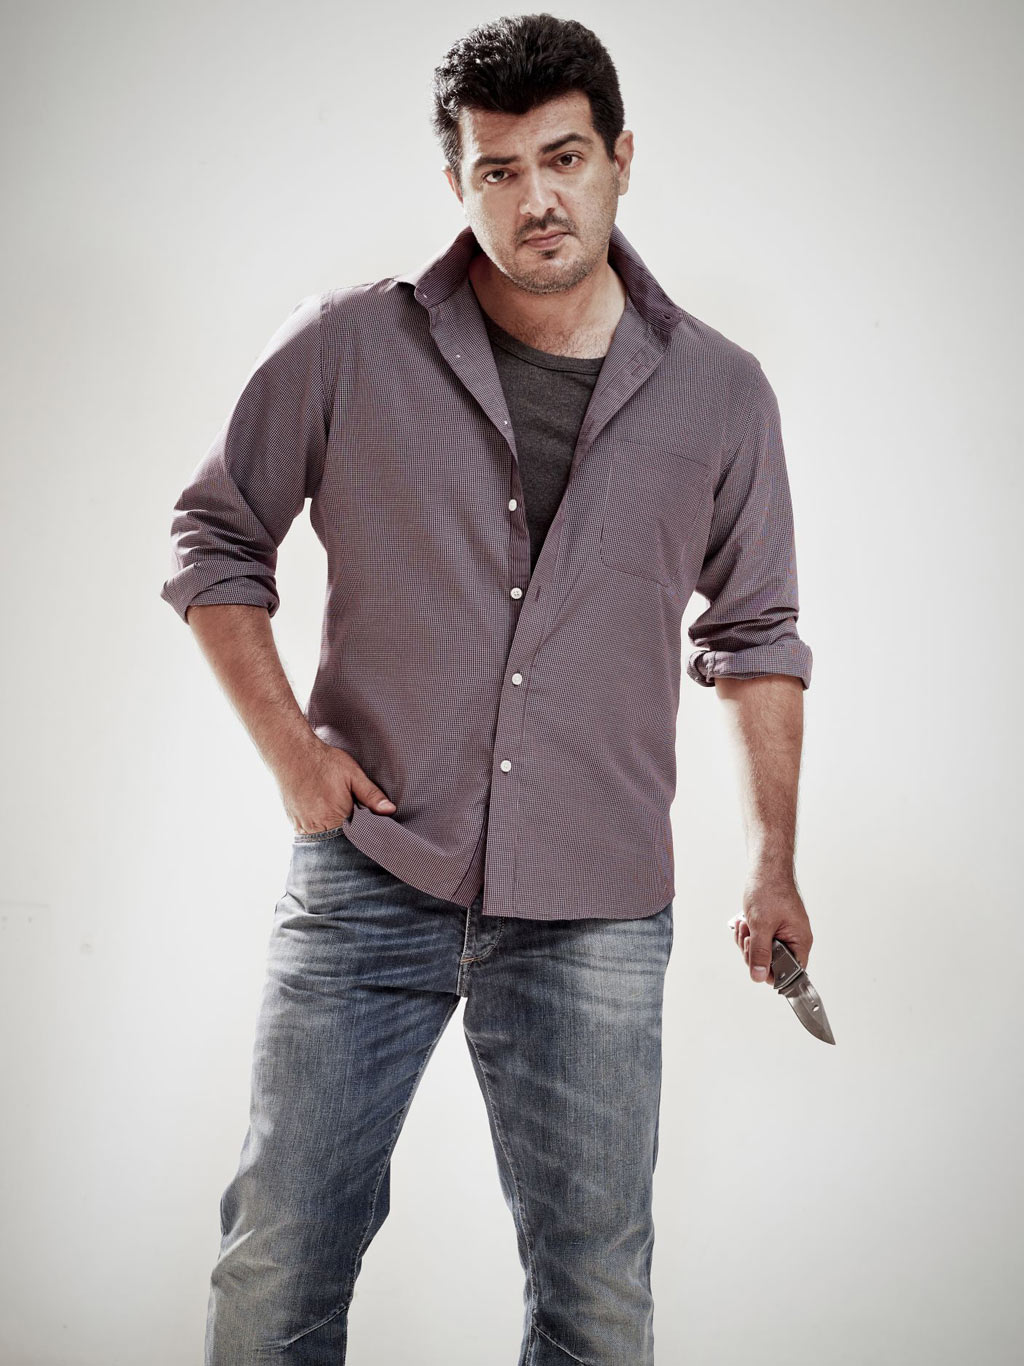 Ajith billa stills photos Bikes stolen - :.UKGS er